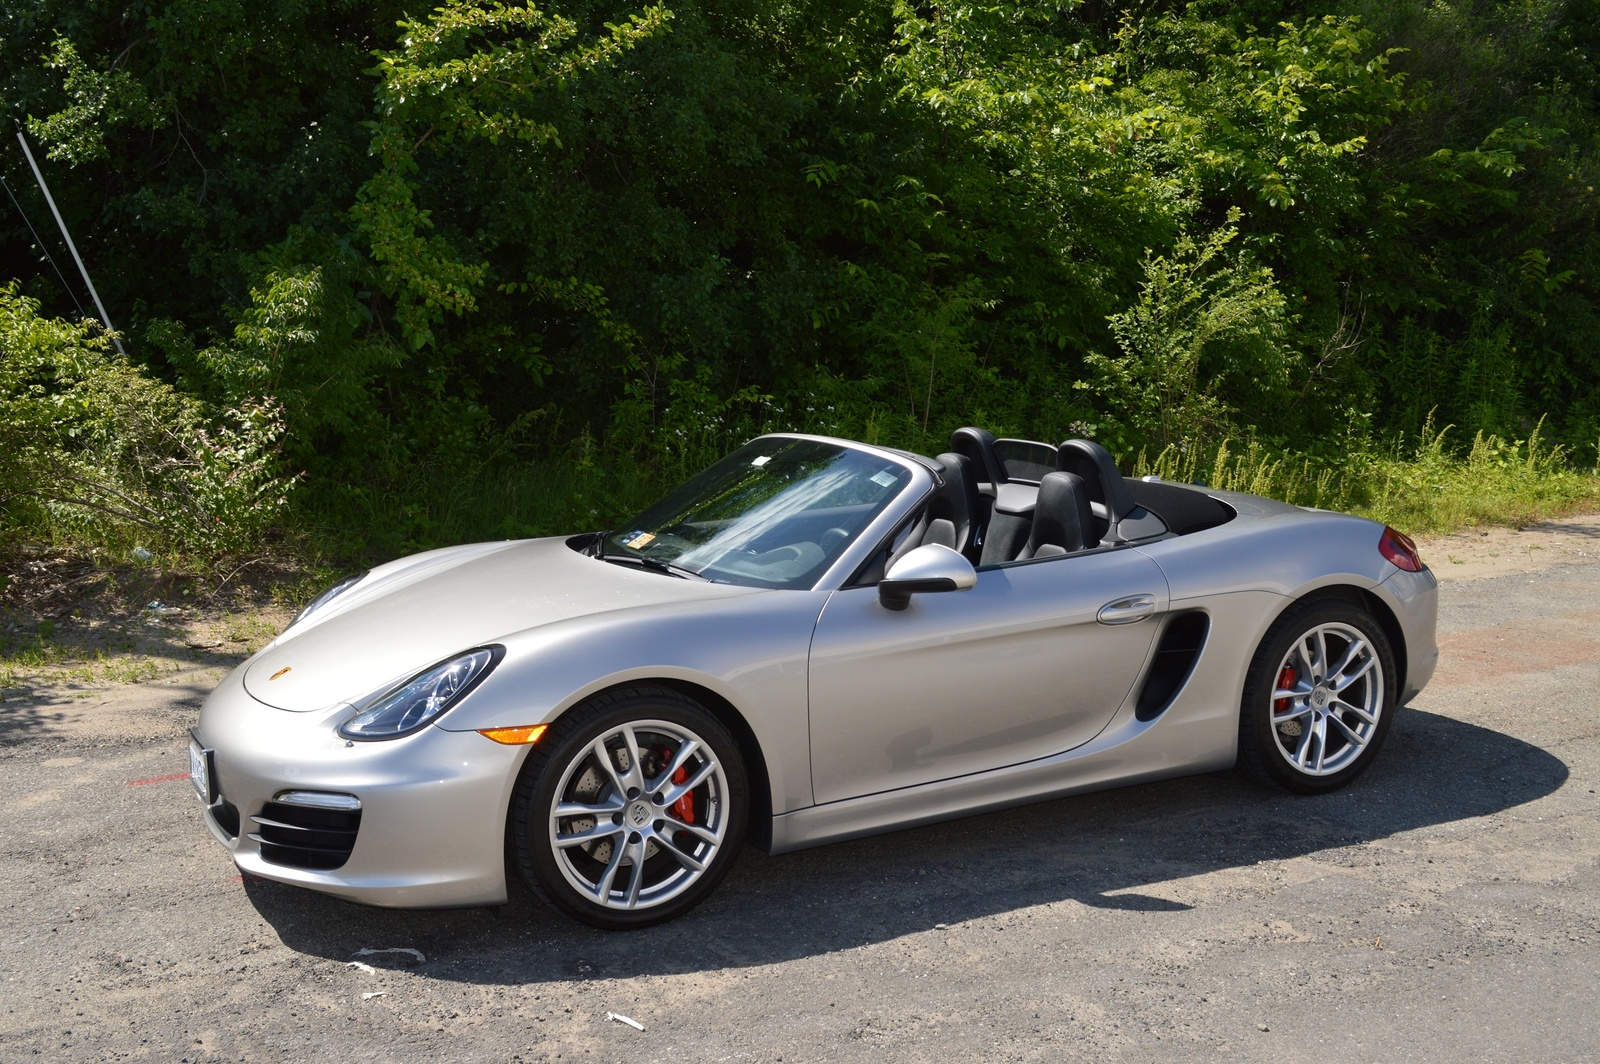 used porsche for sale baltimore md page 2 cargurus. Black Bedroom Furniture Sets. Home Design Ideas